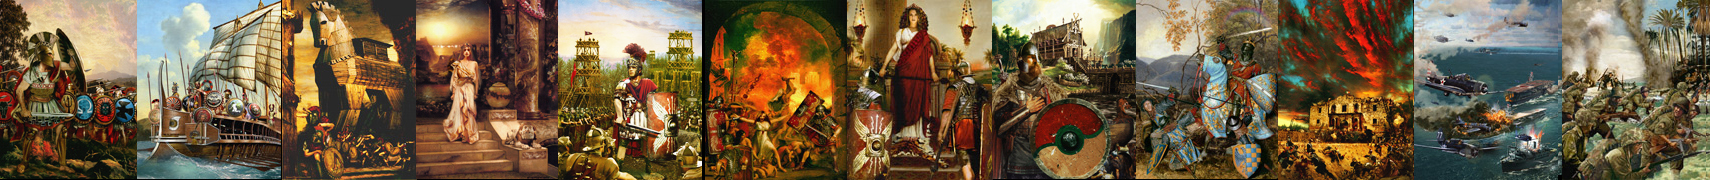 fine art historical painting fantasy illistrations